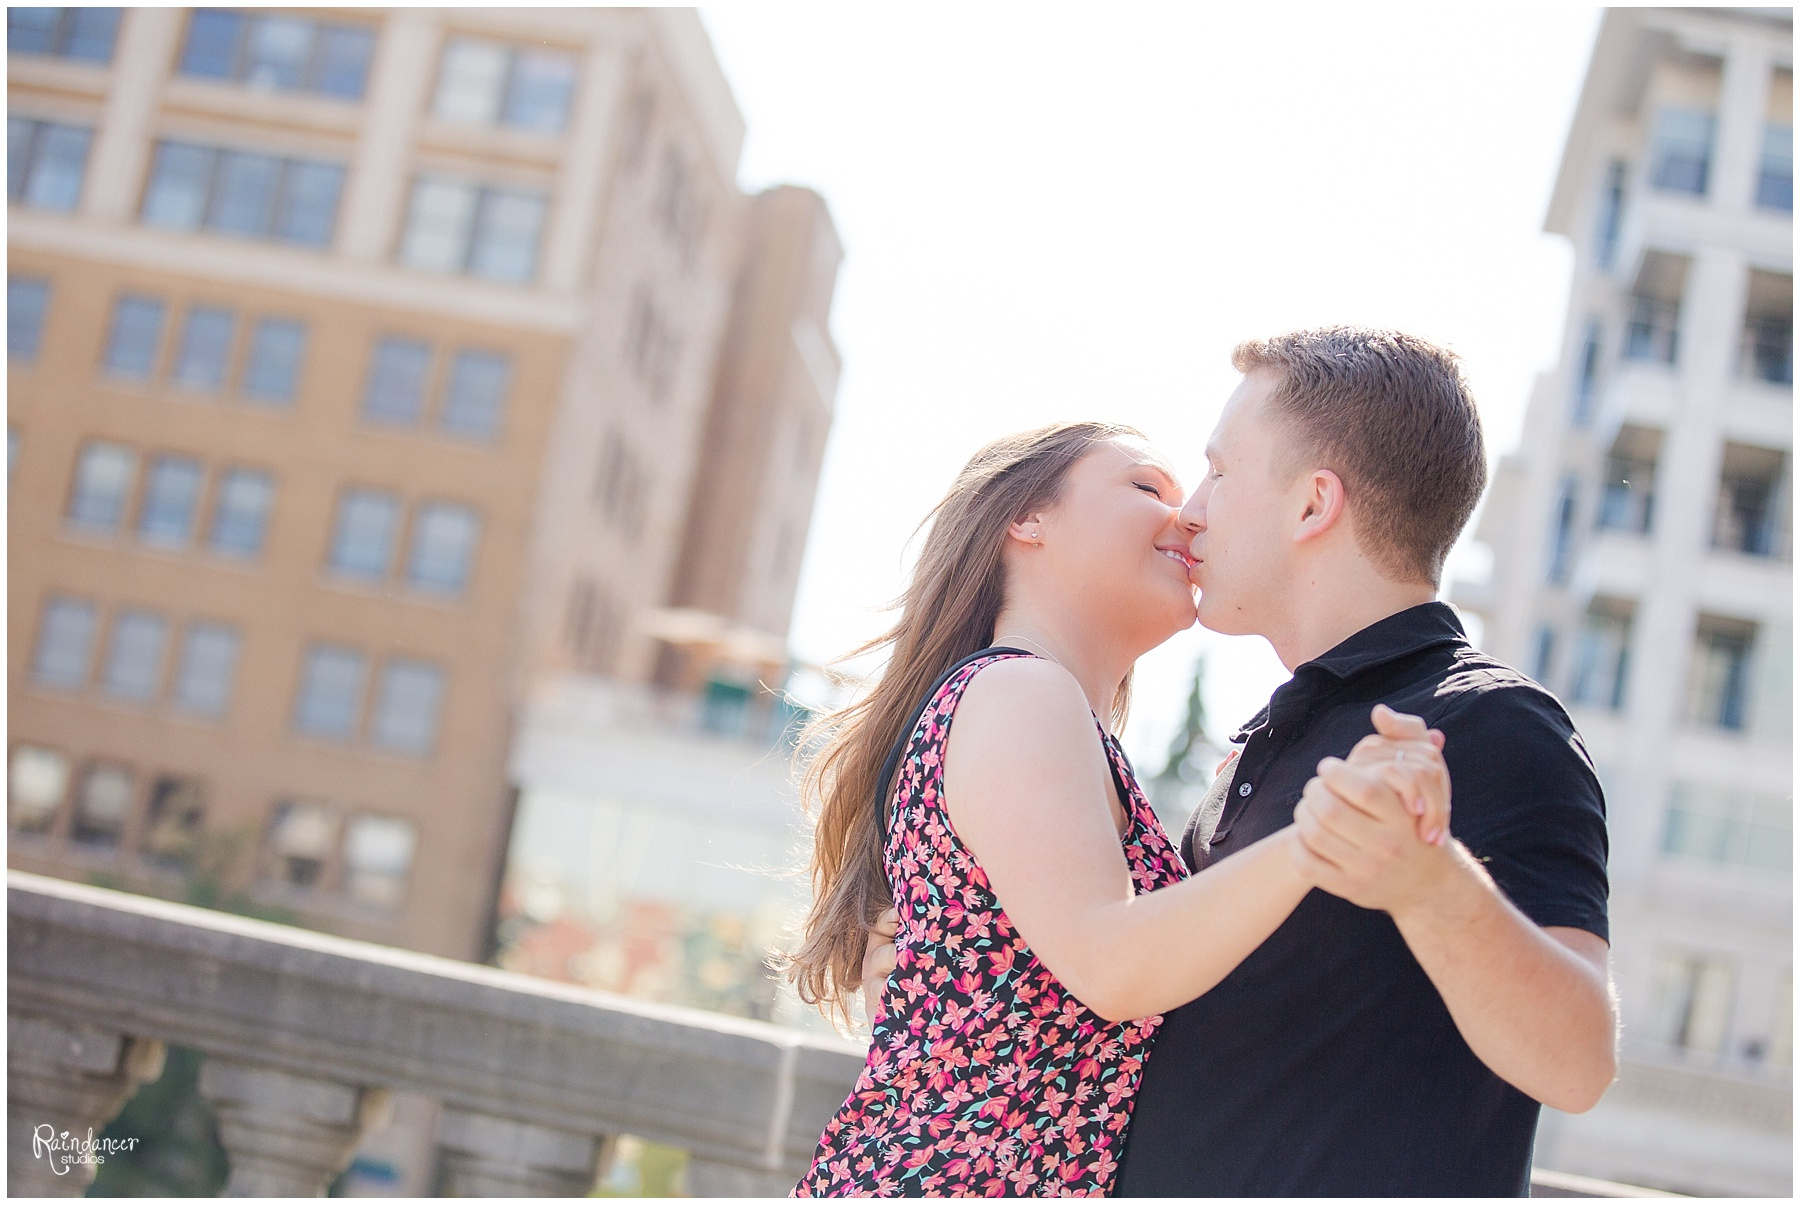 Indianapolis engagement photographer, Indy engagement photographer, Indy engagement photography, Indianapolis engagement photography, Indianapolis wedding photographer, Indy Wedding Photographer, Indianapolis family photographer, Indianapolis family photography, Indy family photographer, Indy family photography